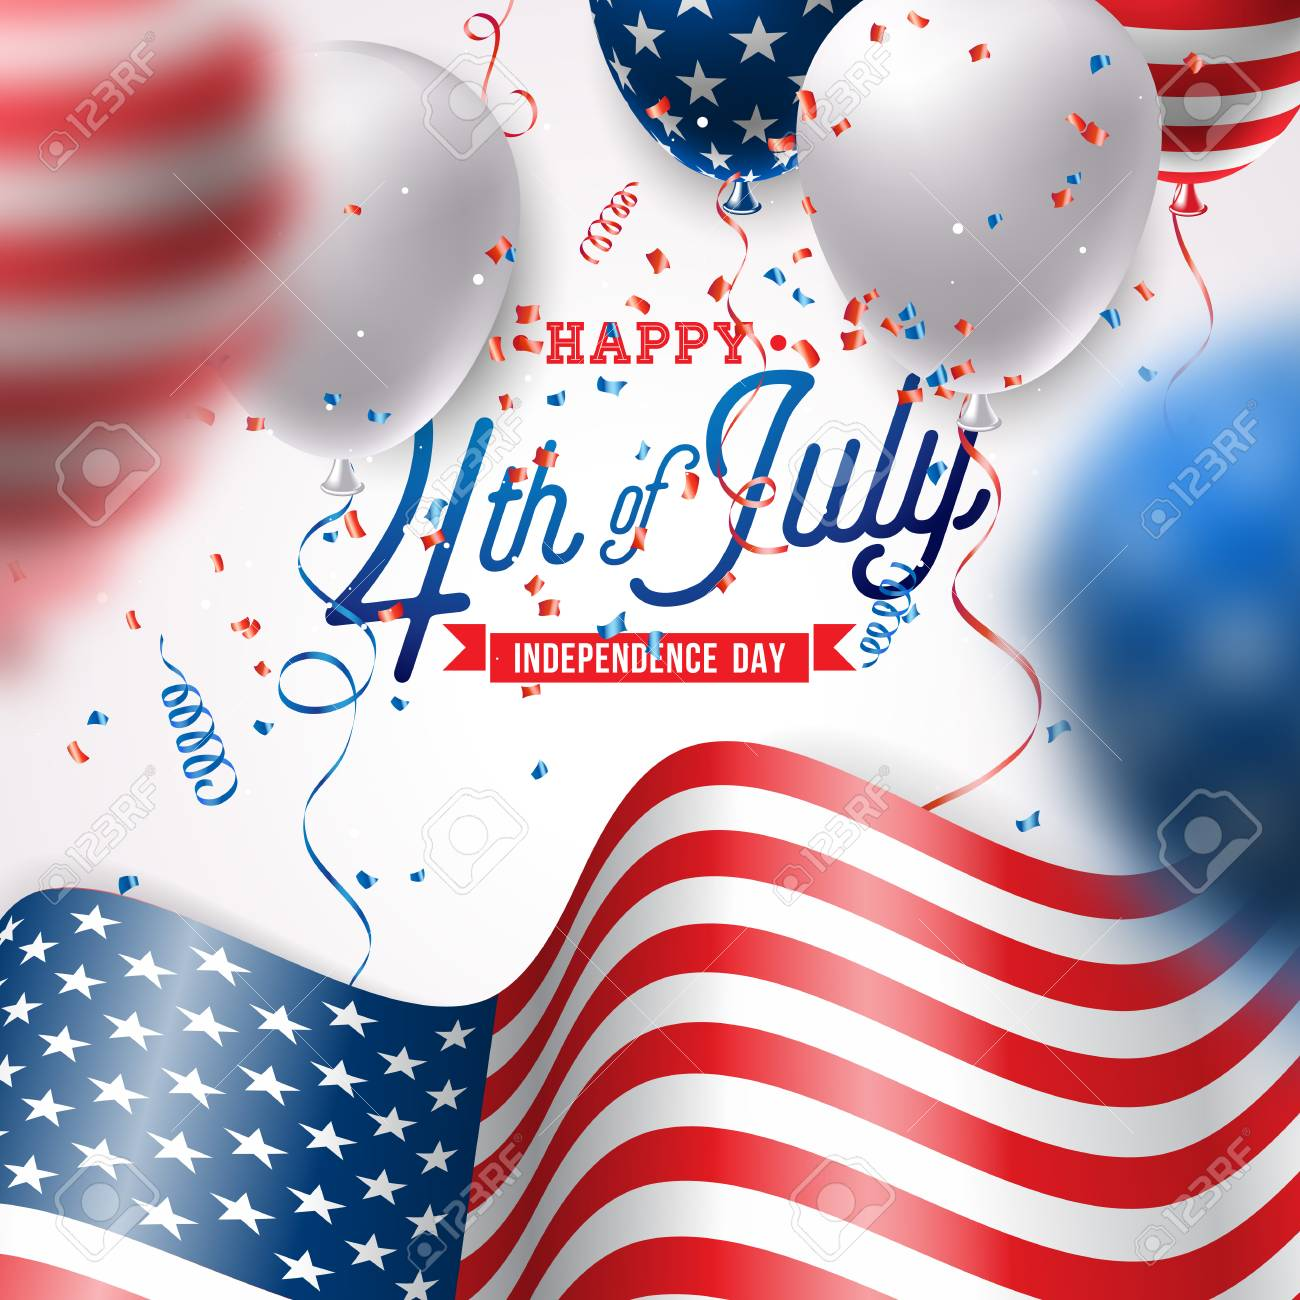 Independence Day of the USA Vector Illustration. Fourth of July Design with Air Balloon and Flag on White Background for Banner, Greeting Card, Invitation or Holiday Poster. - 102789407